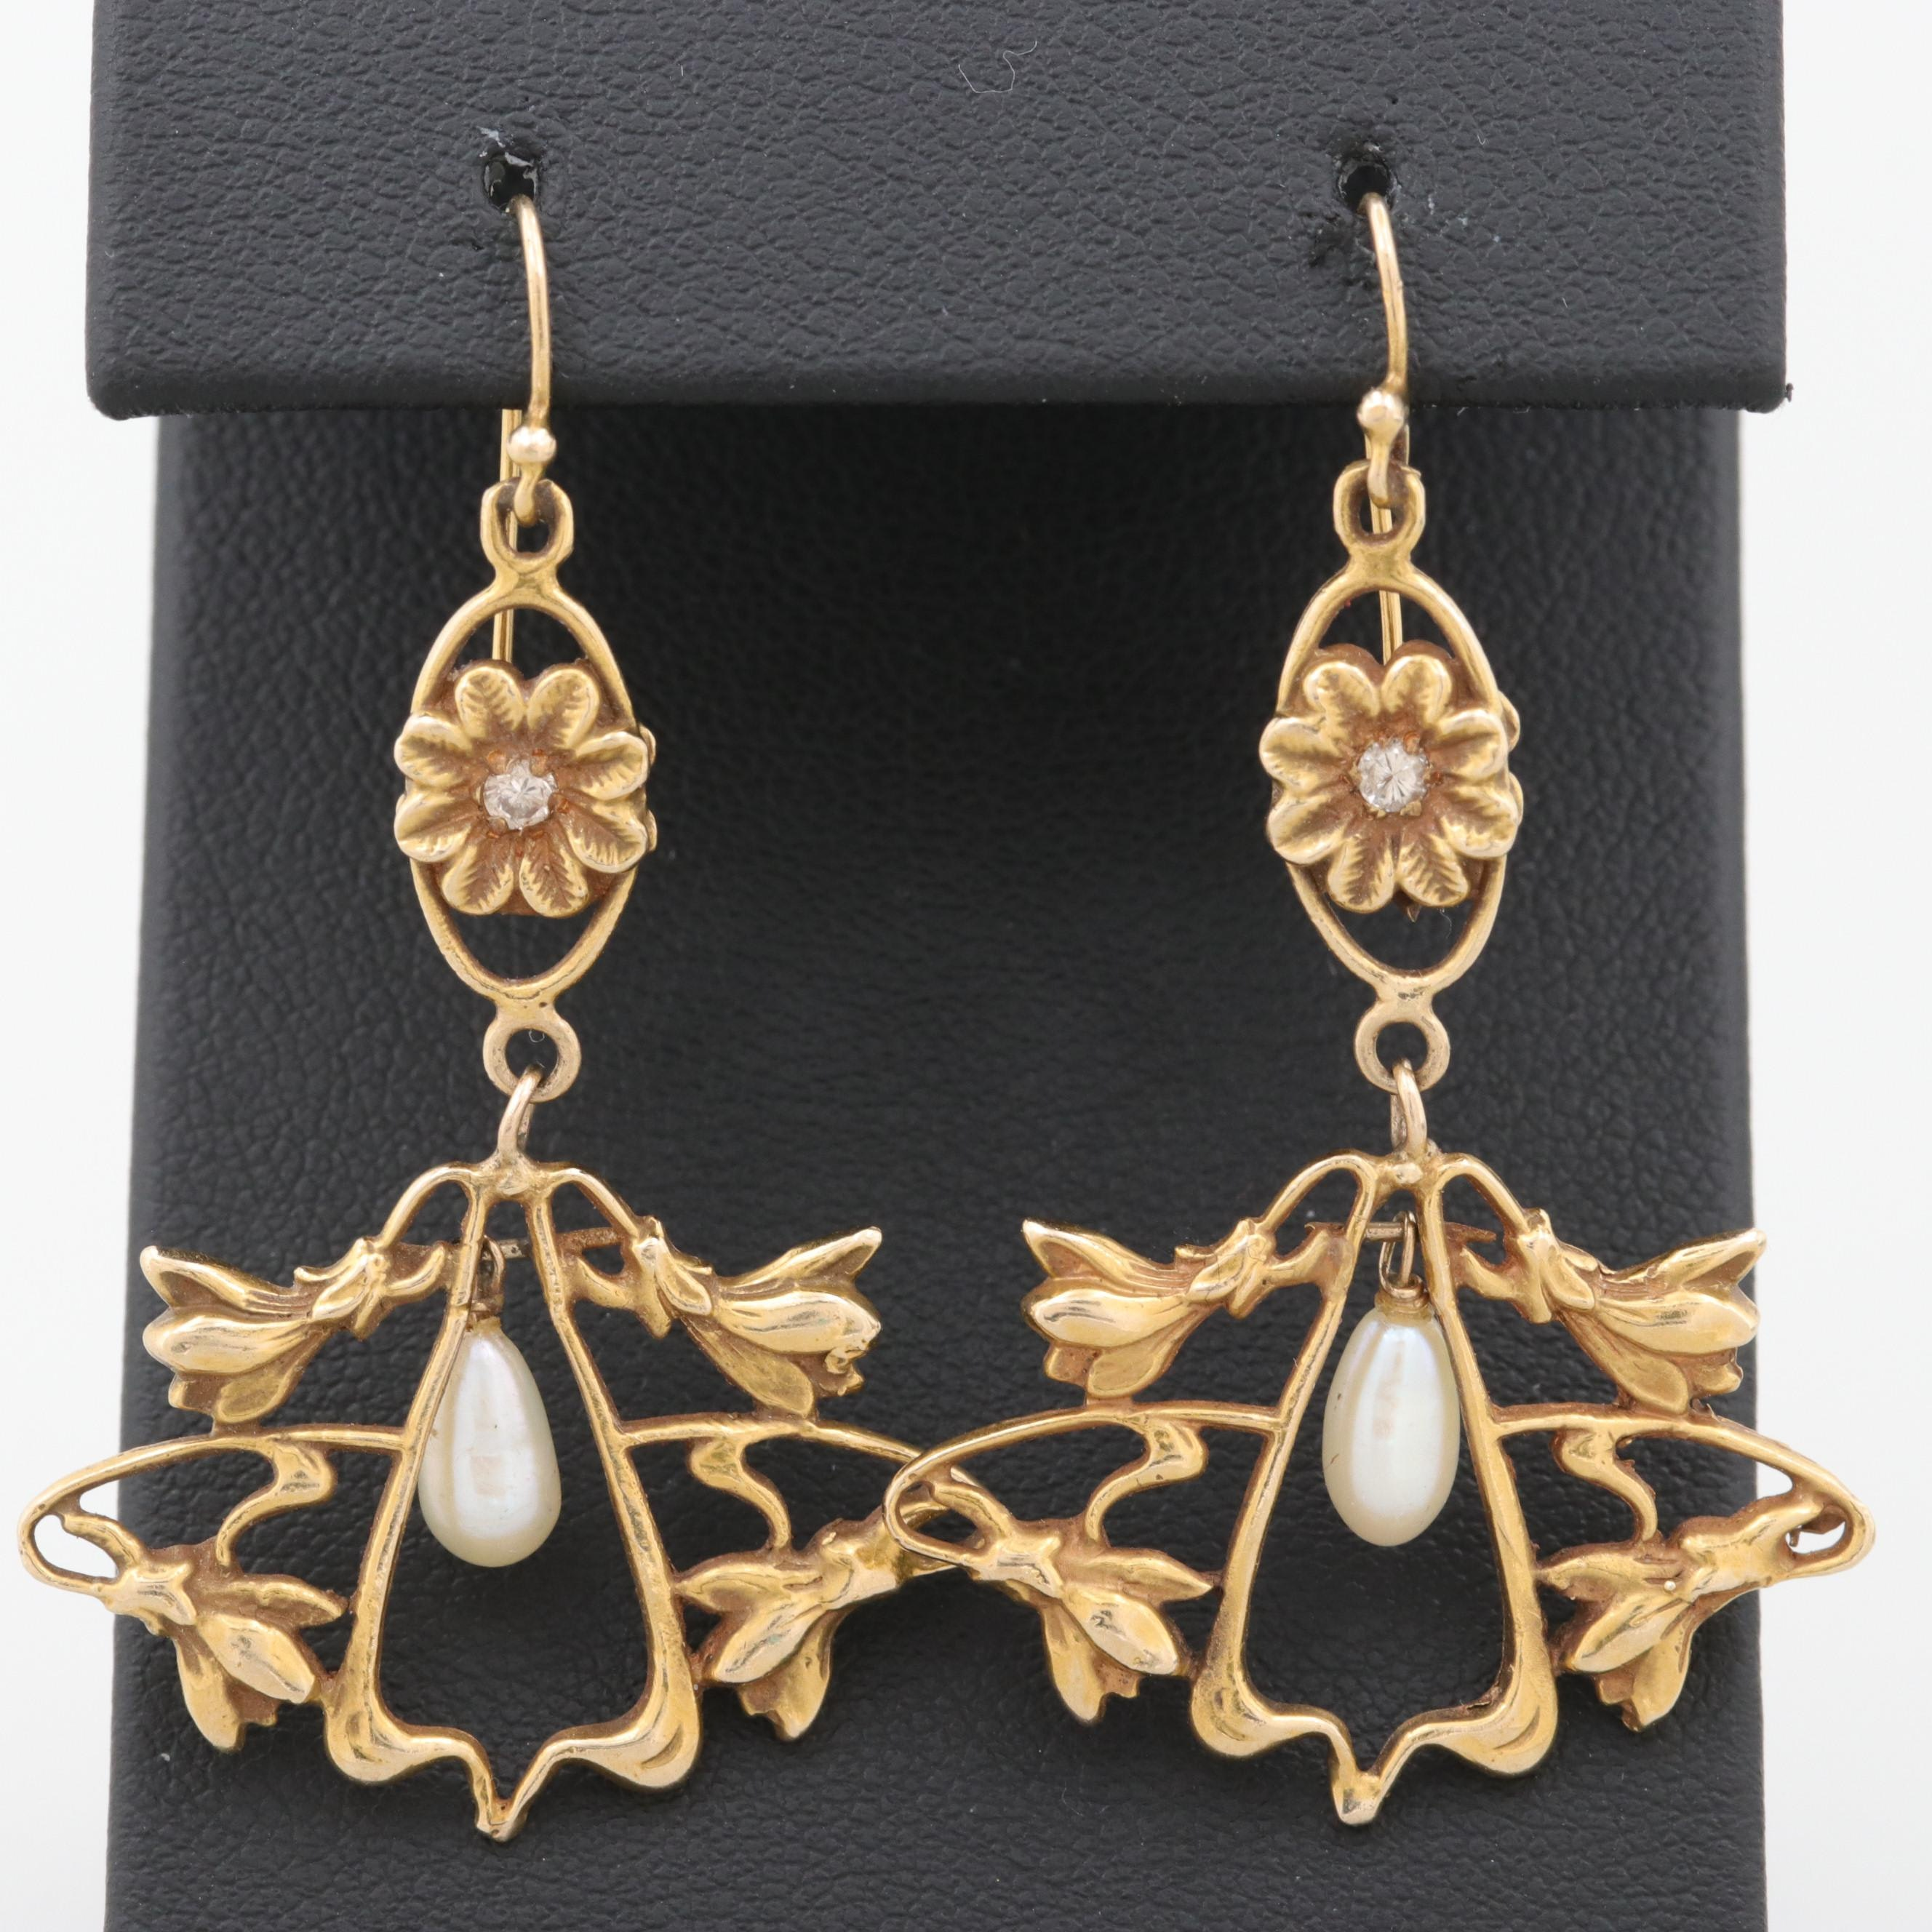 Art Nouveau 14K Yellow Gold Cultured Pearl and Diamond Earrings